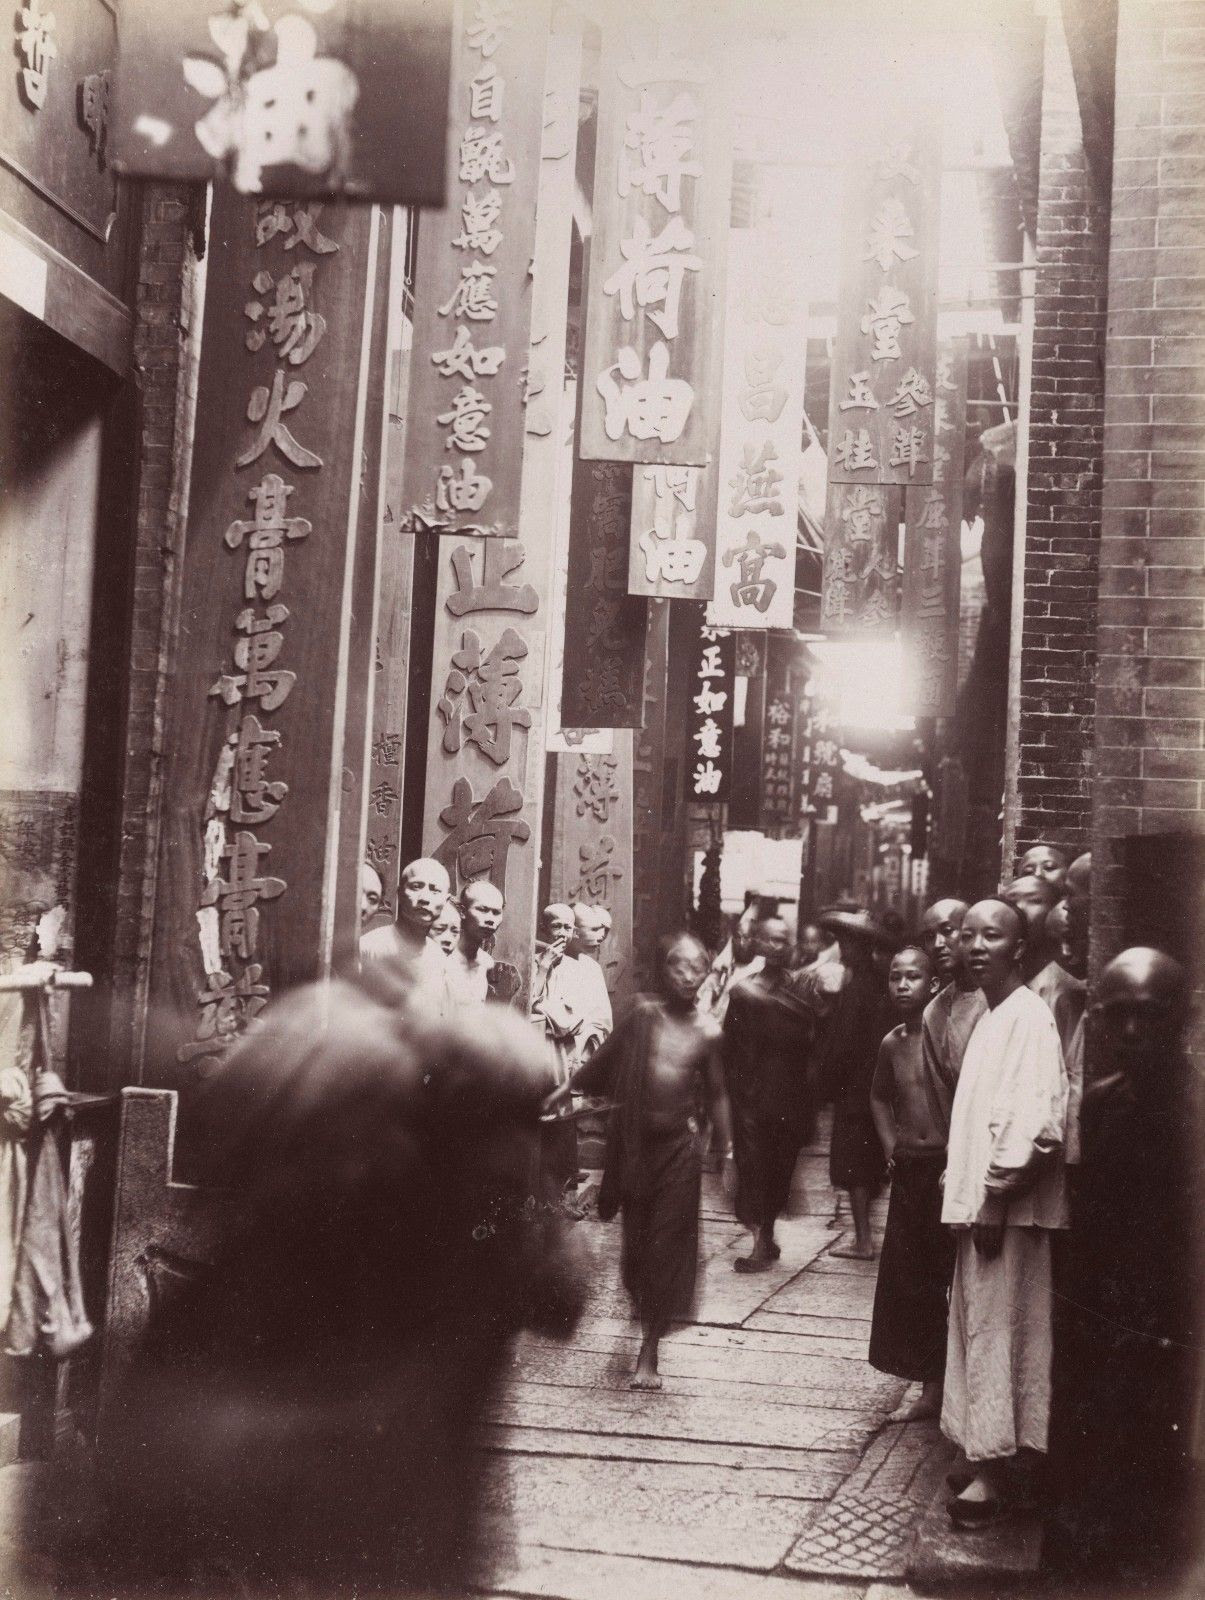 http://atlasobscura.tumblr.com/post/110355289836/historicaltimes-street-scene-in-guangzhou